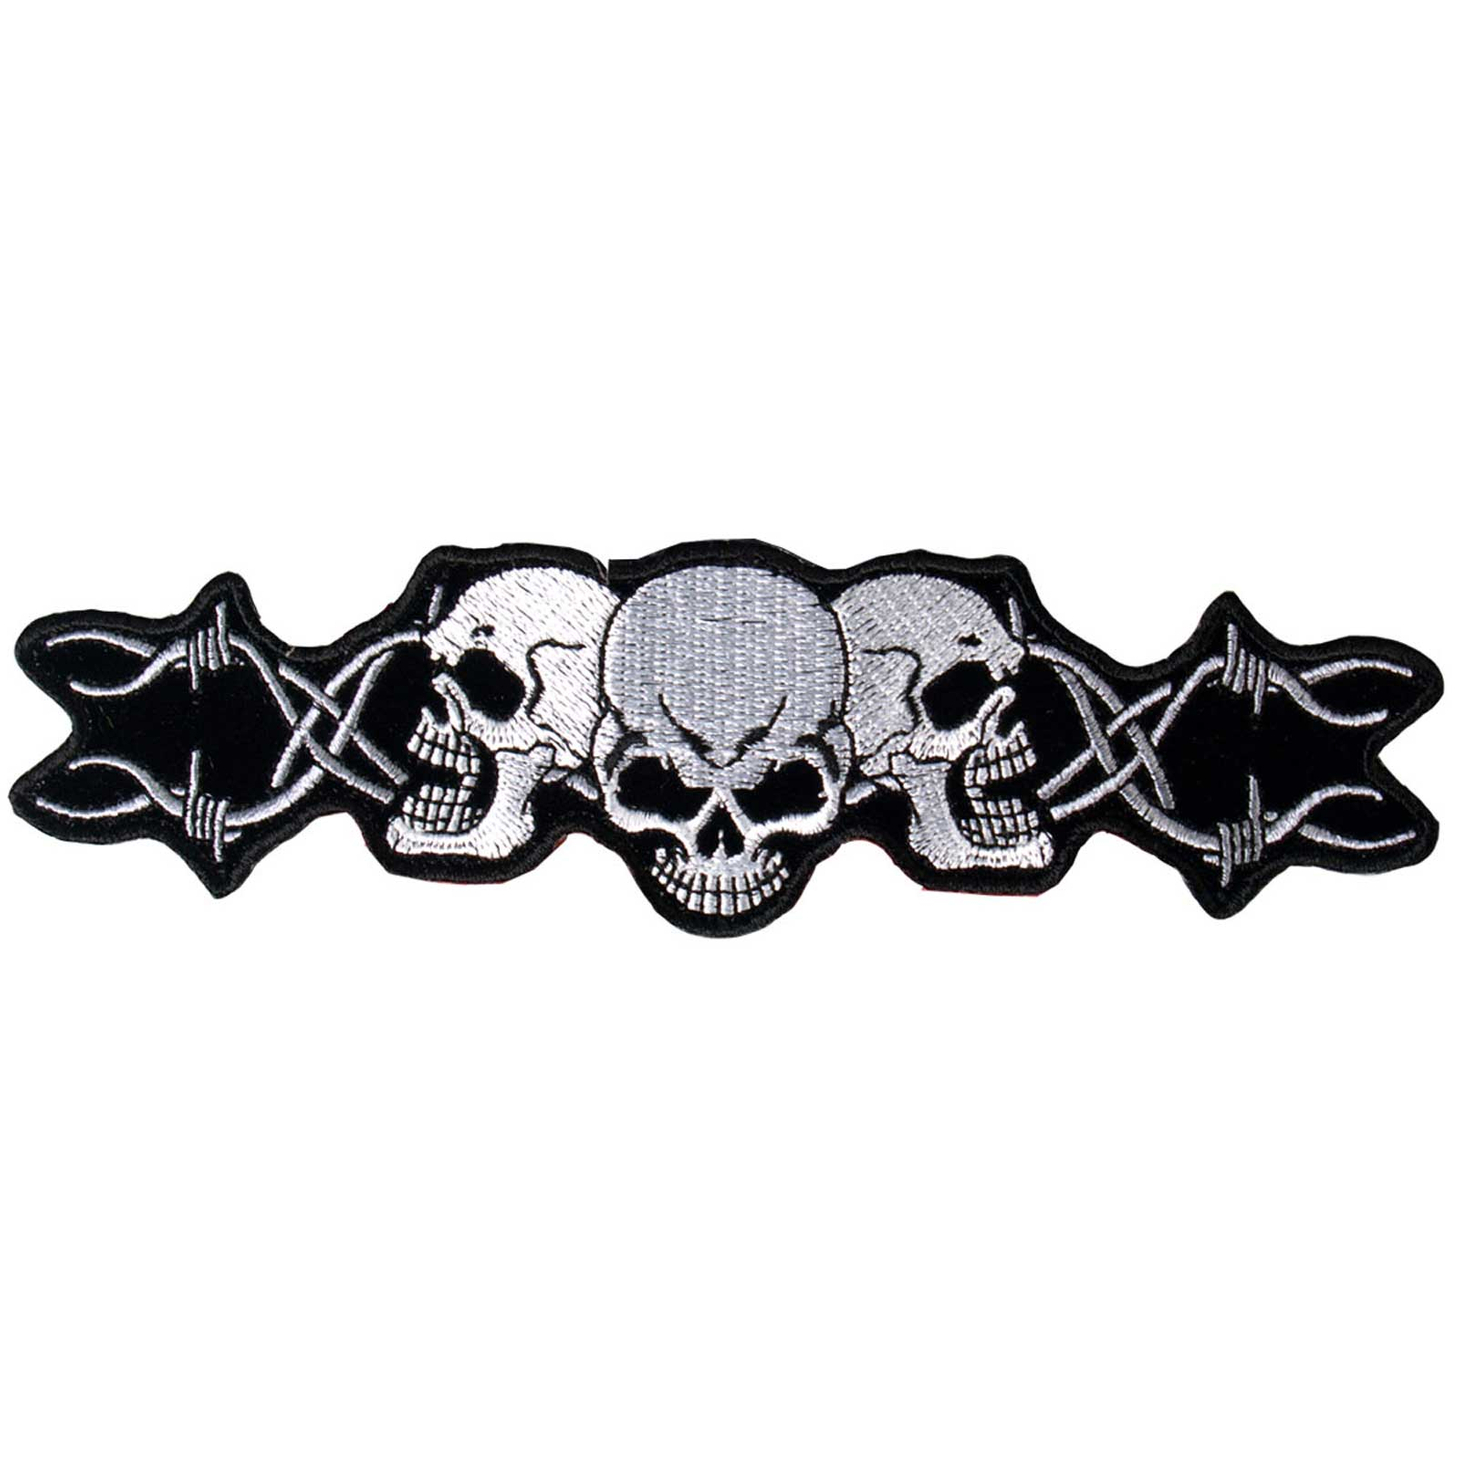 "Barbed Wire Skull Patch 4"" – Picture 1"